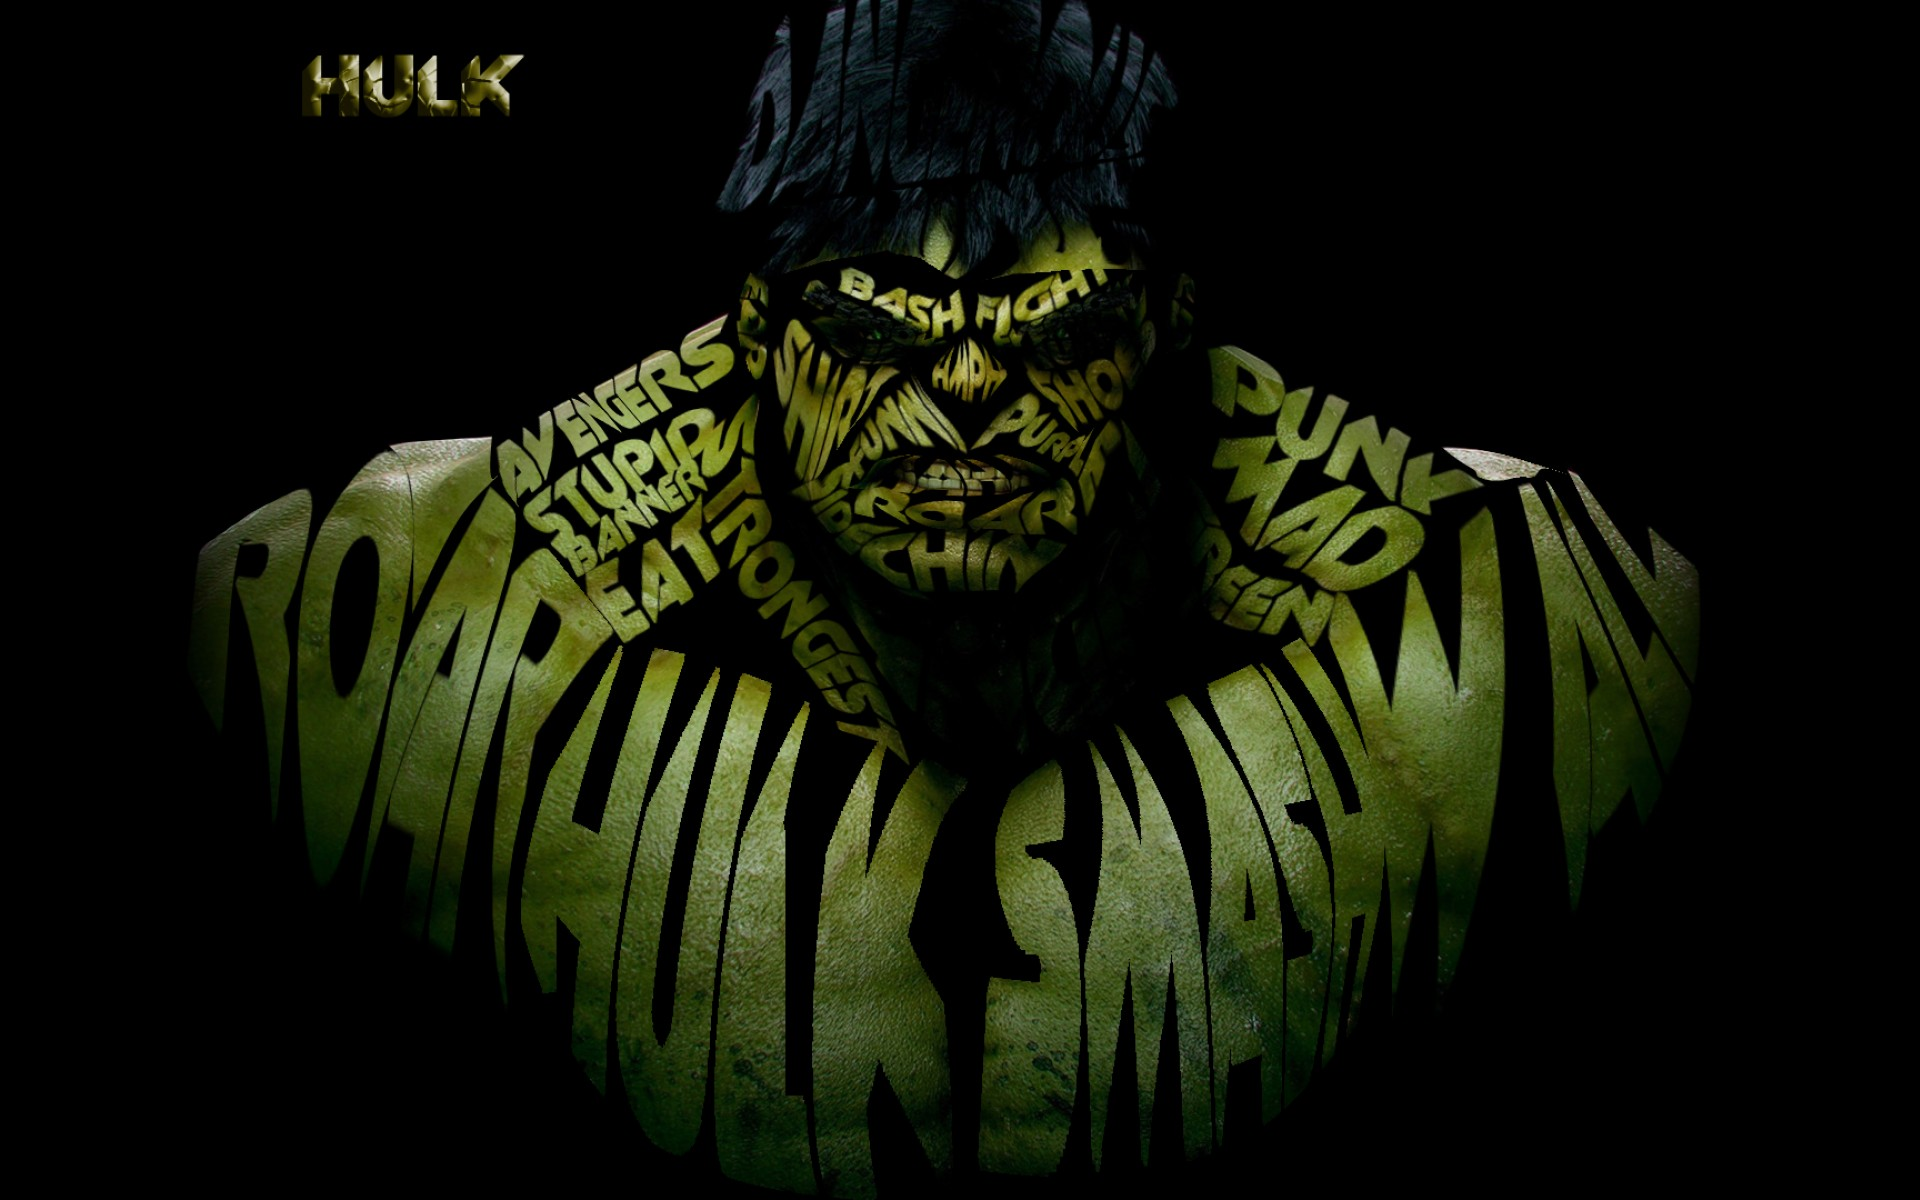 Incredible Hulk Marvel Avenger Superhero Background Desktop Hd Wallpaper